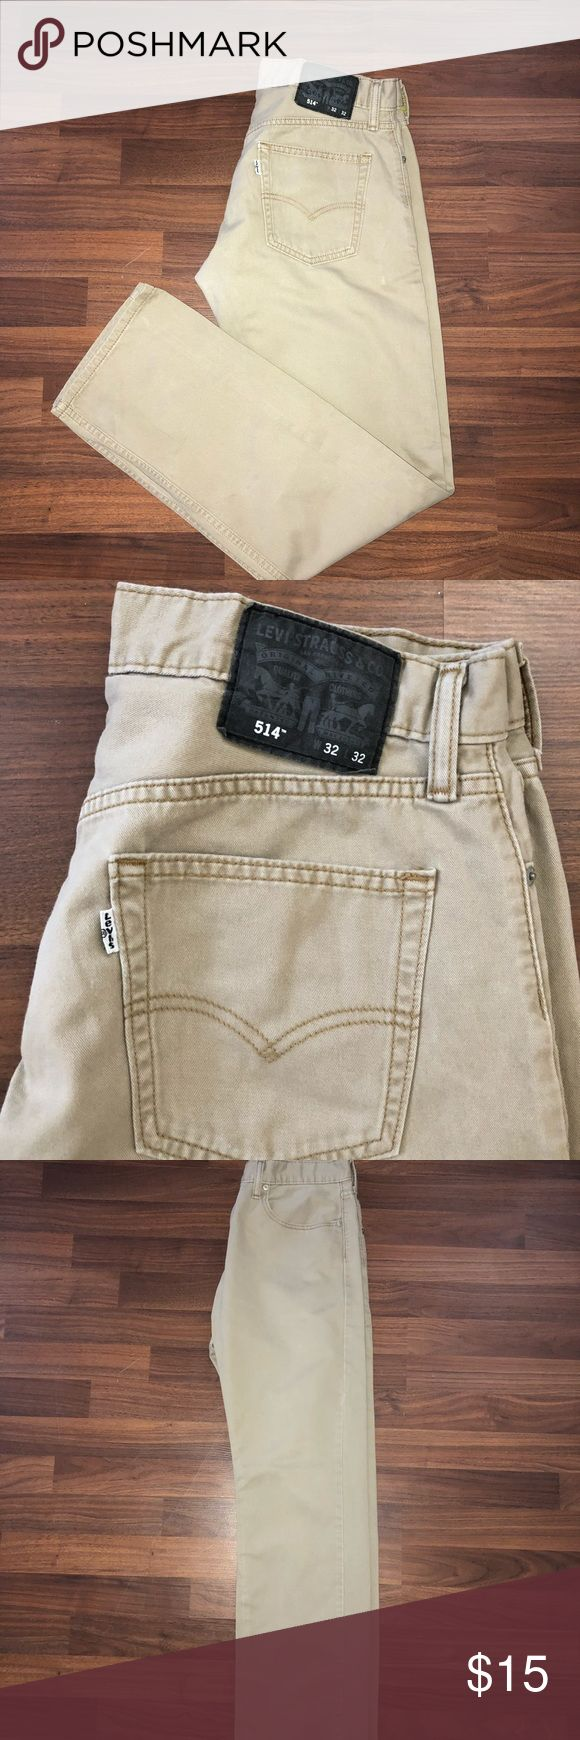 Men's Levi 514 jeans size 32X32 Men's Levi 514 jeans size 32X32. This are light tan pants. They are in good condition, small rub in crouch as shown that's not noticeable when wearing and not bad at all. That why I have them price so low Levi's Jeans Slim Straight